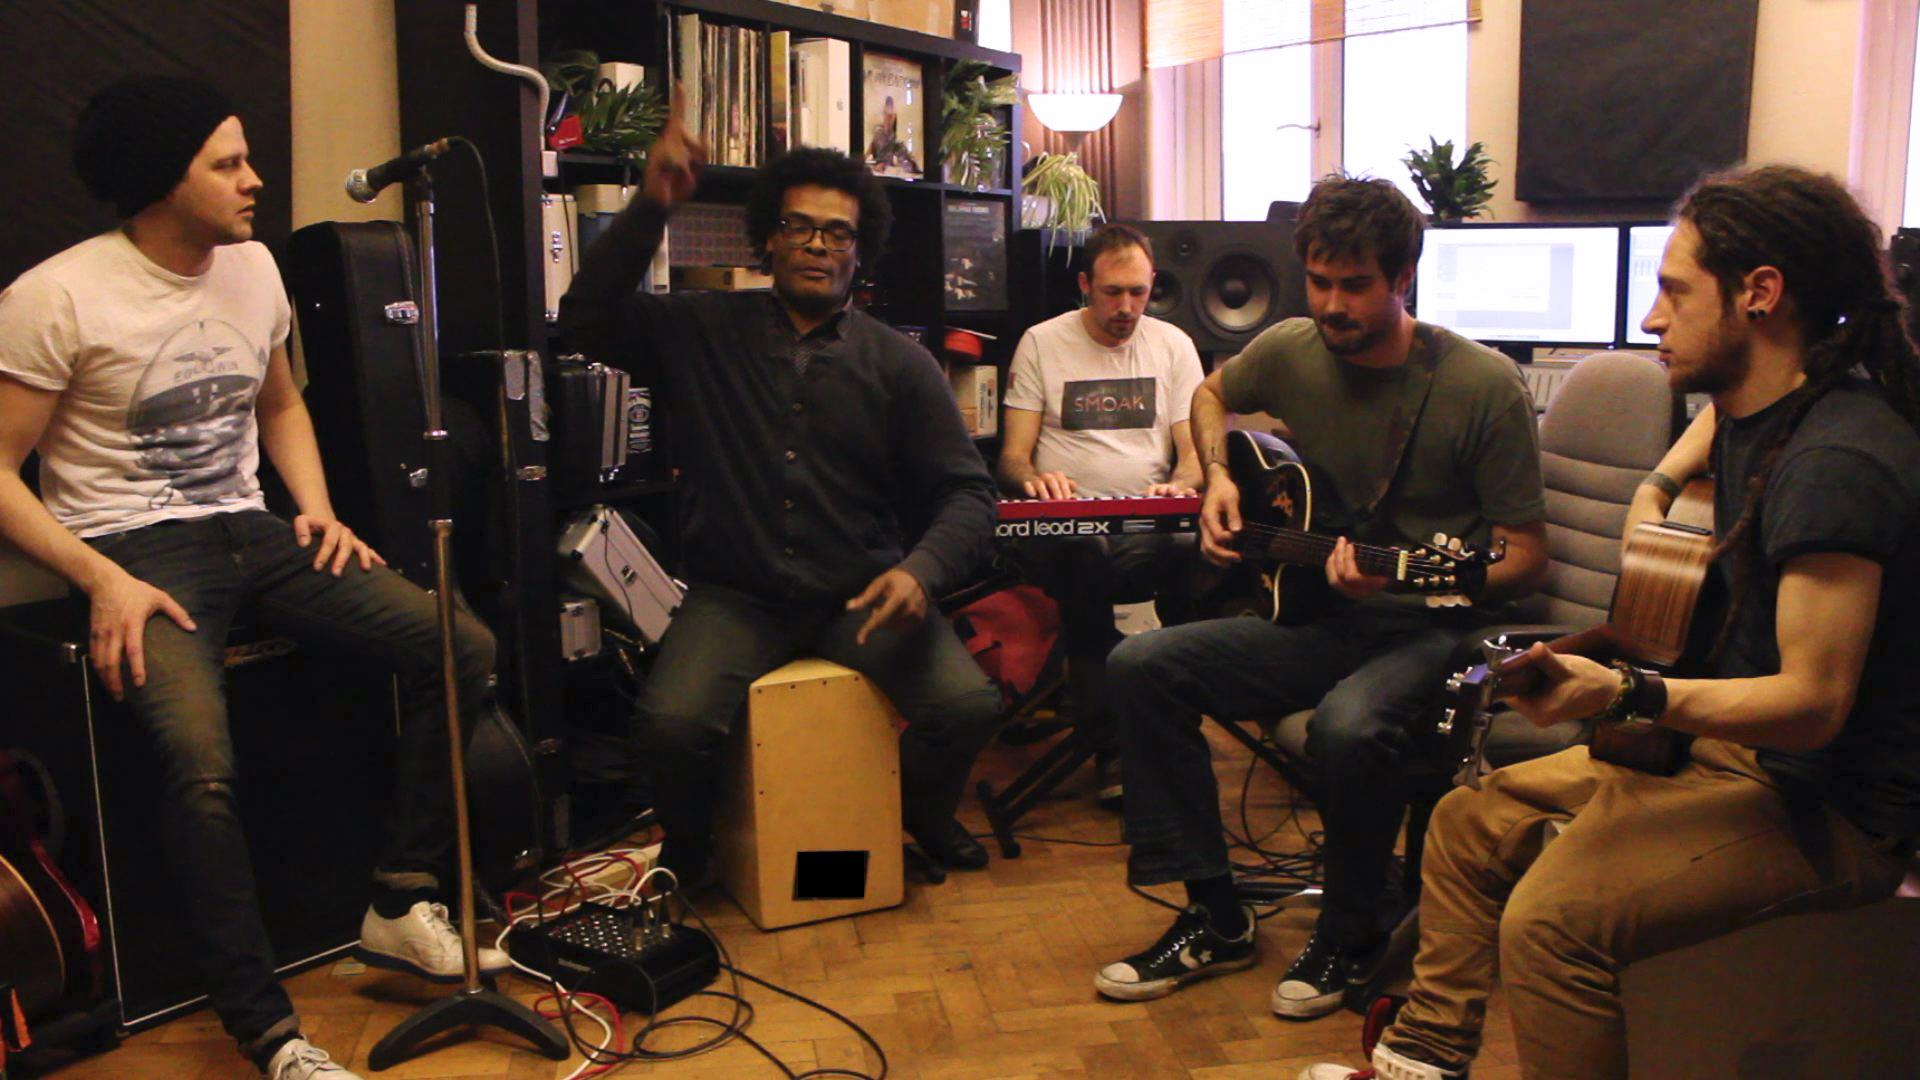 The Mike Moss band recording an acoustic track